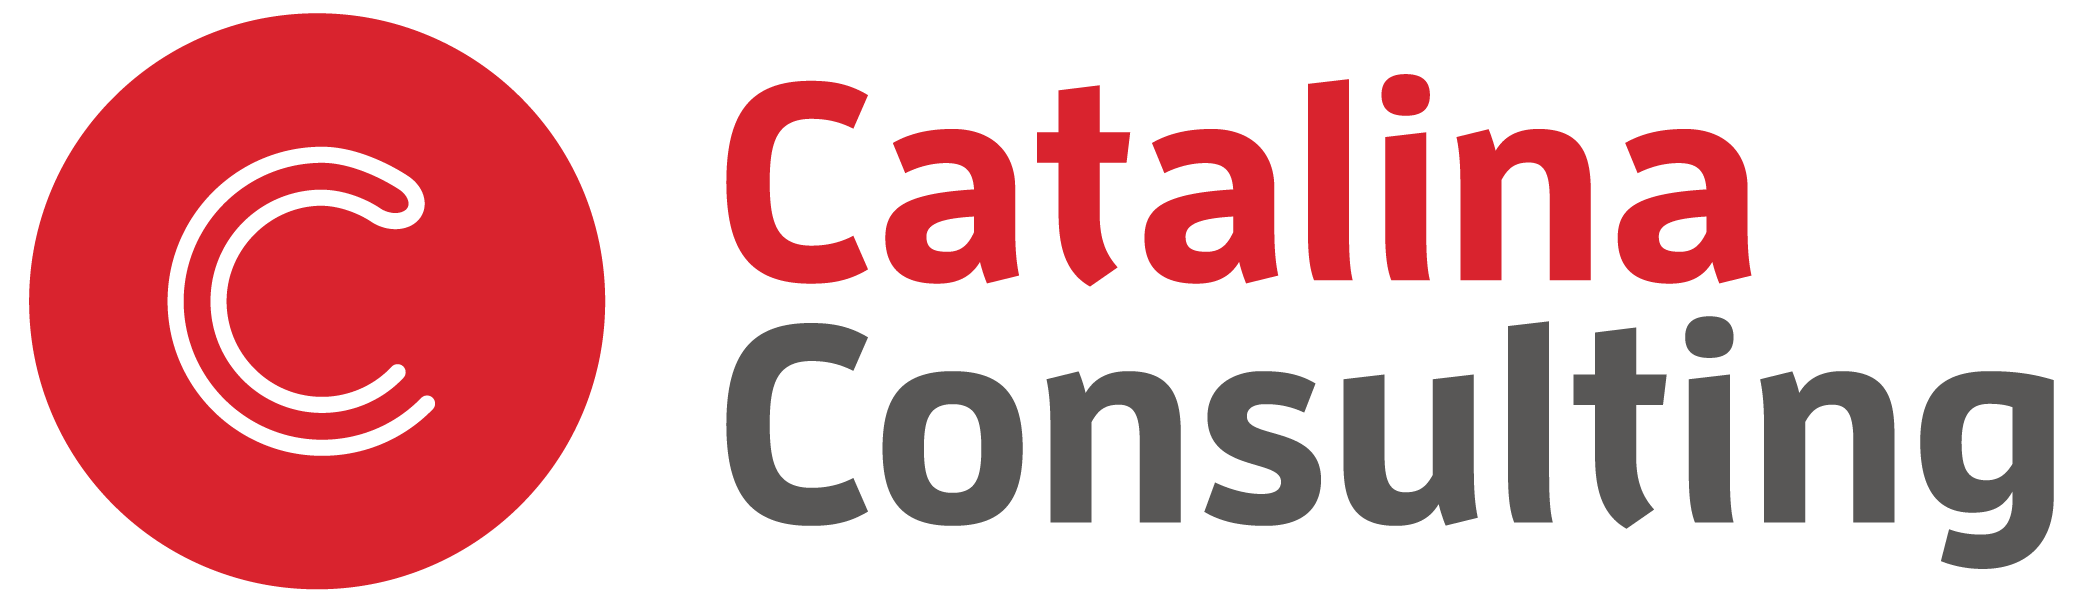 Catalina Consulting Logo